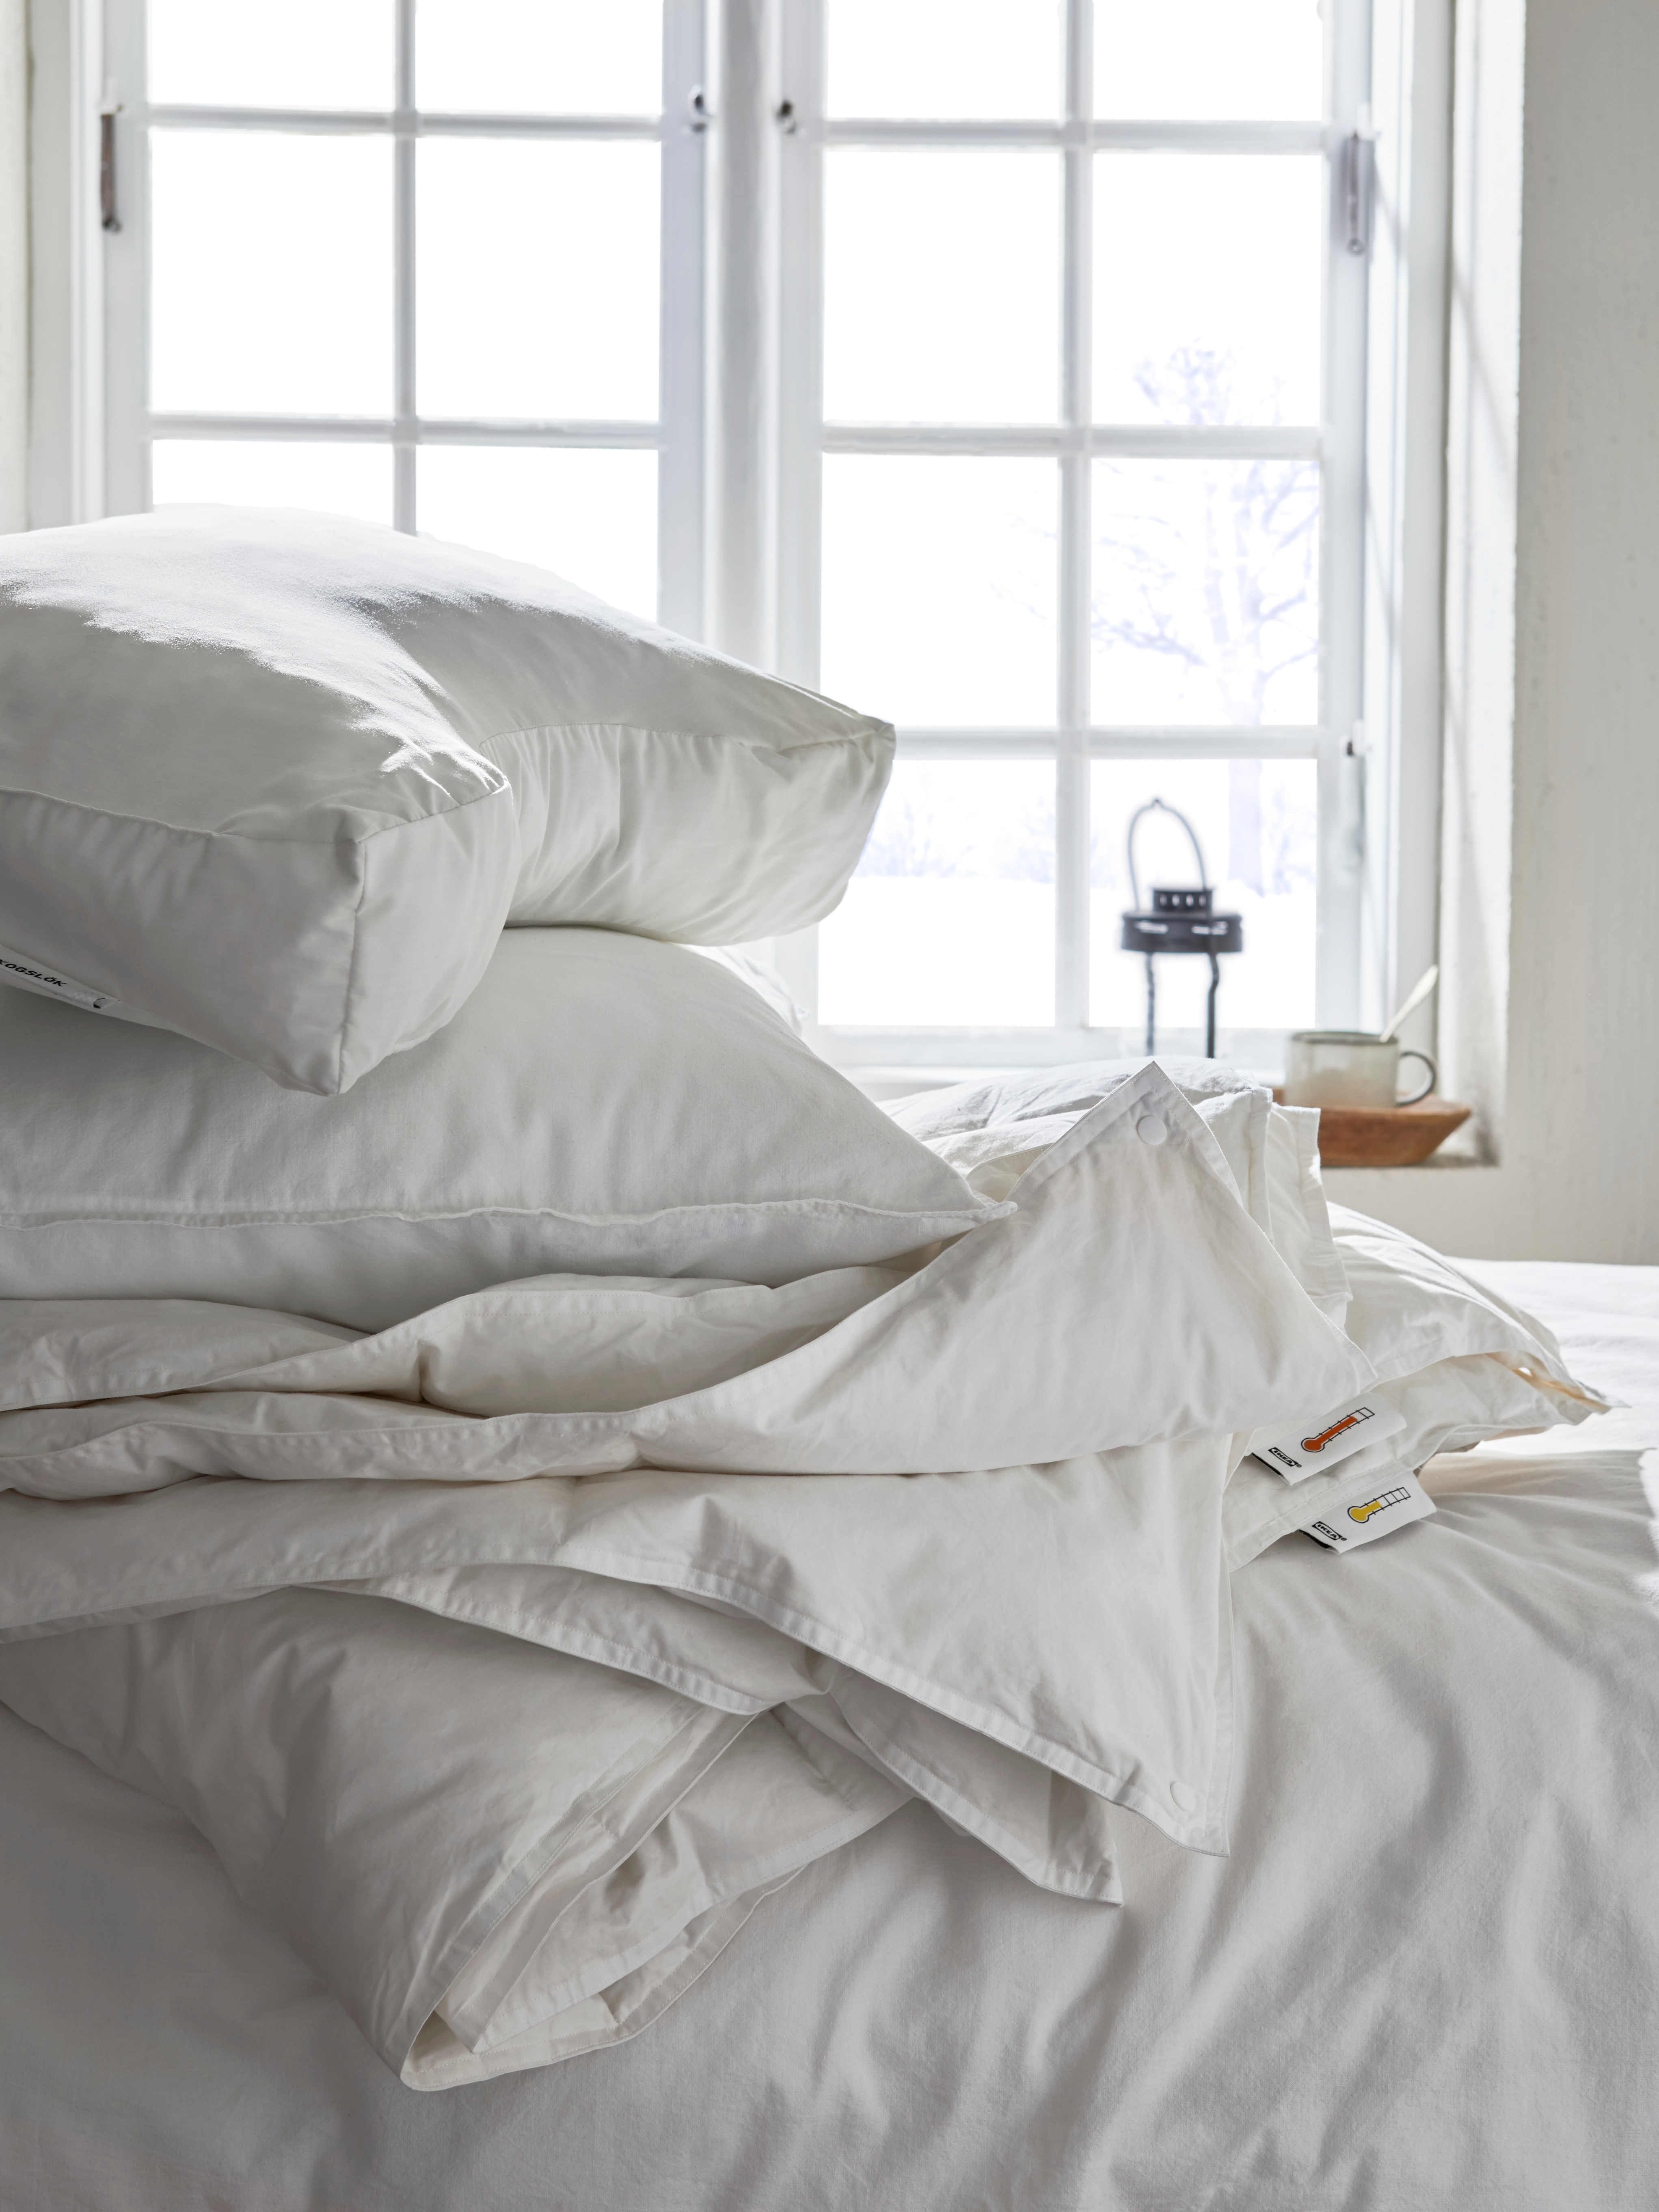 FJÄLLARNIKA double duvet and pillows on a white bed with a white wall and window in the background.